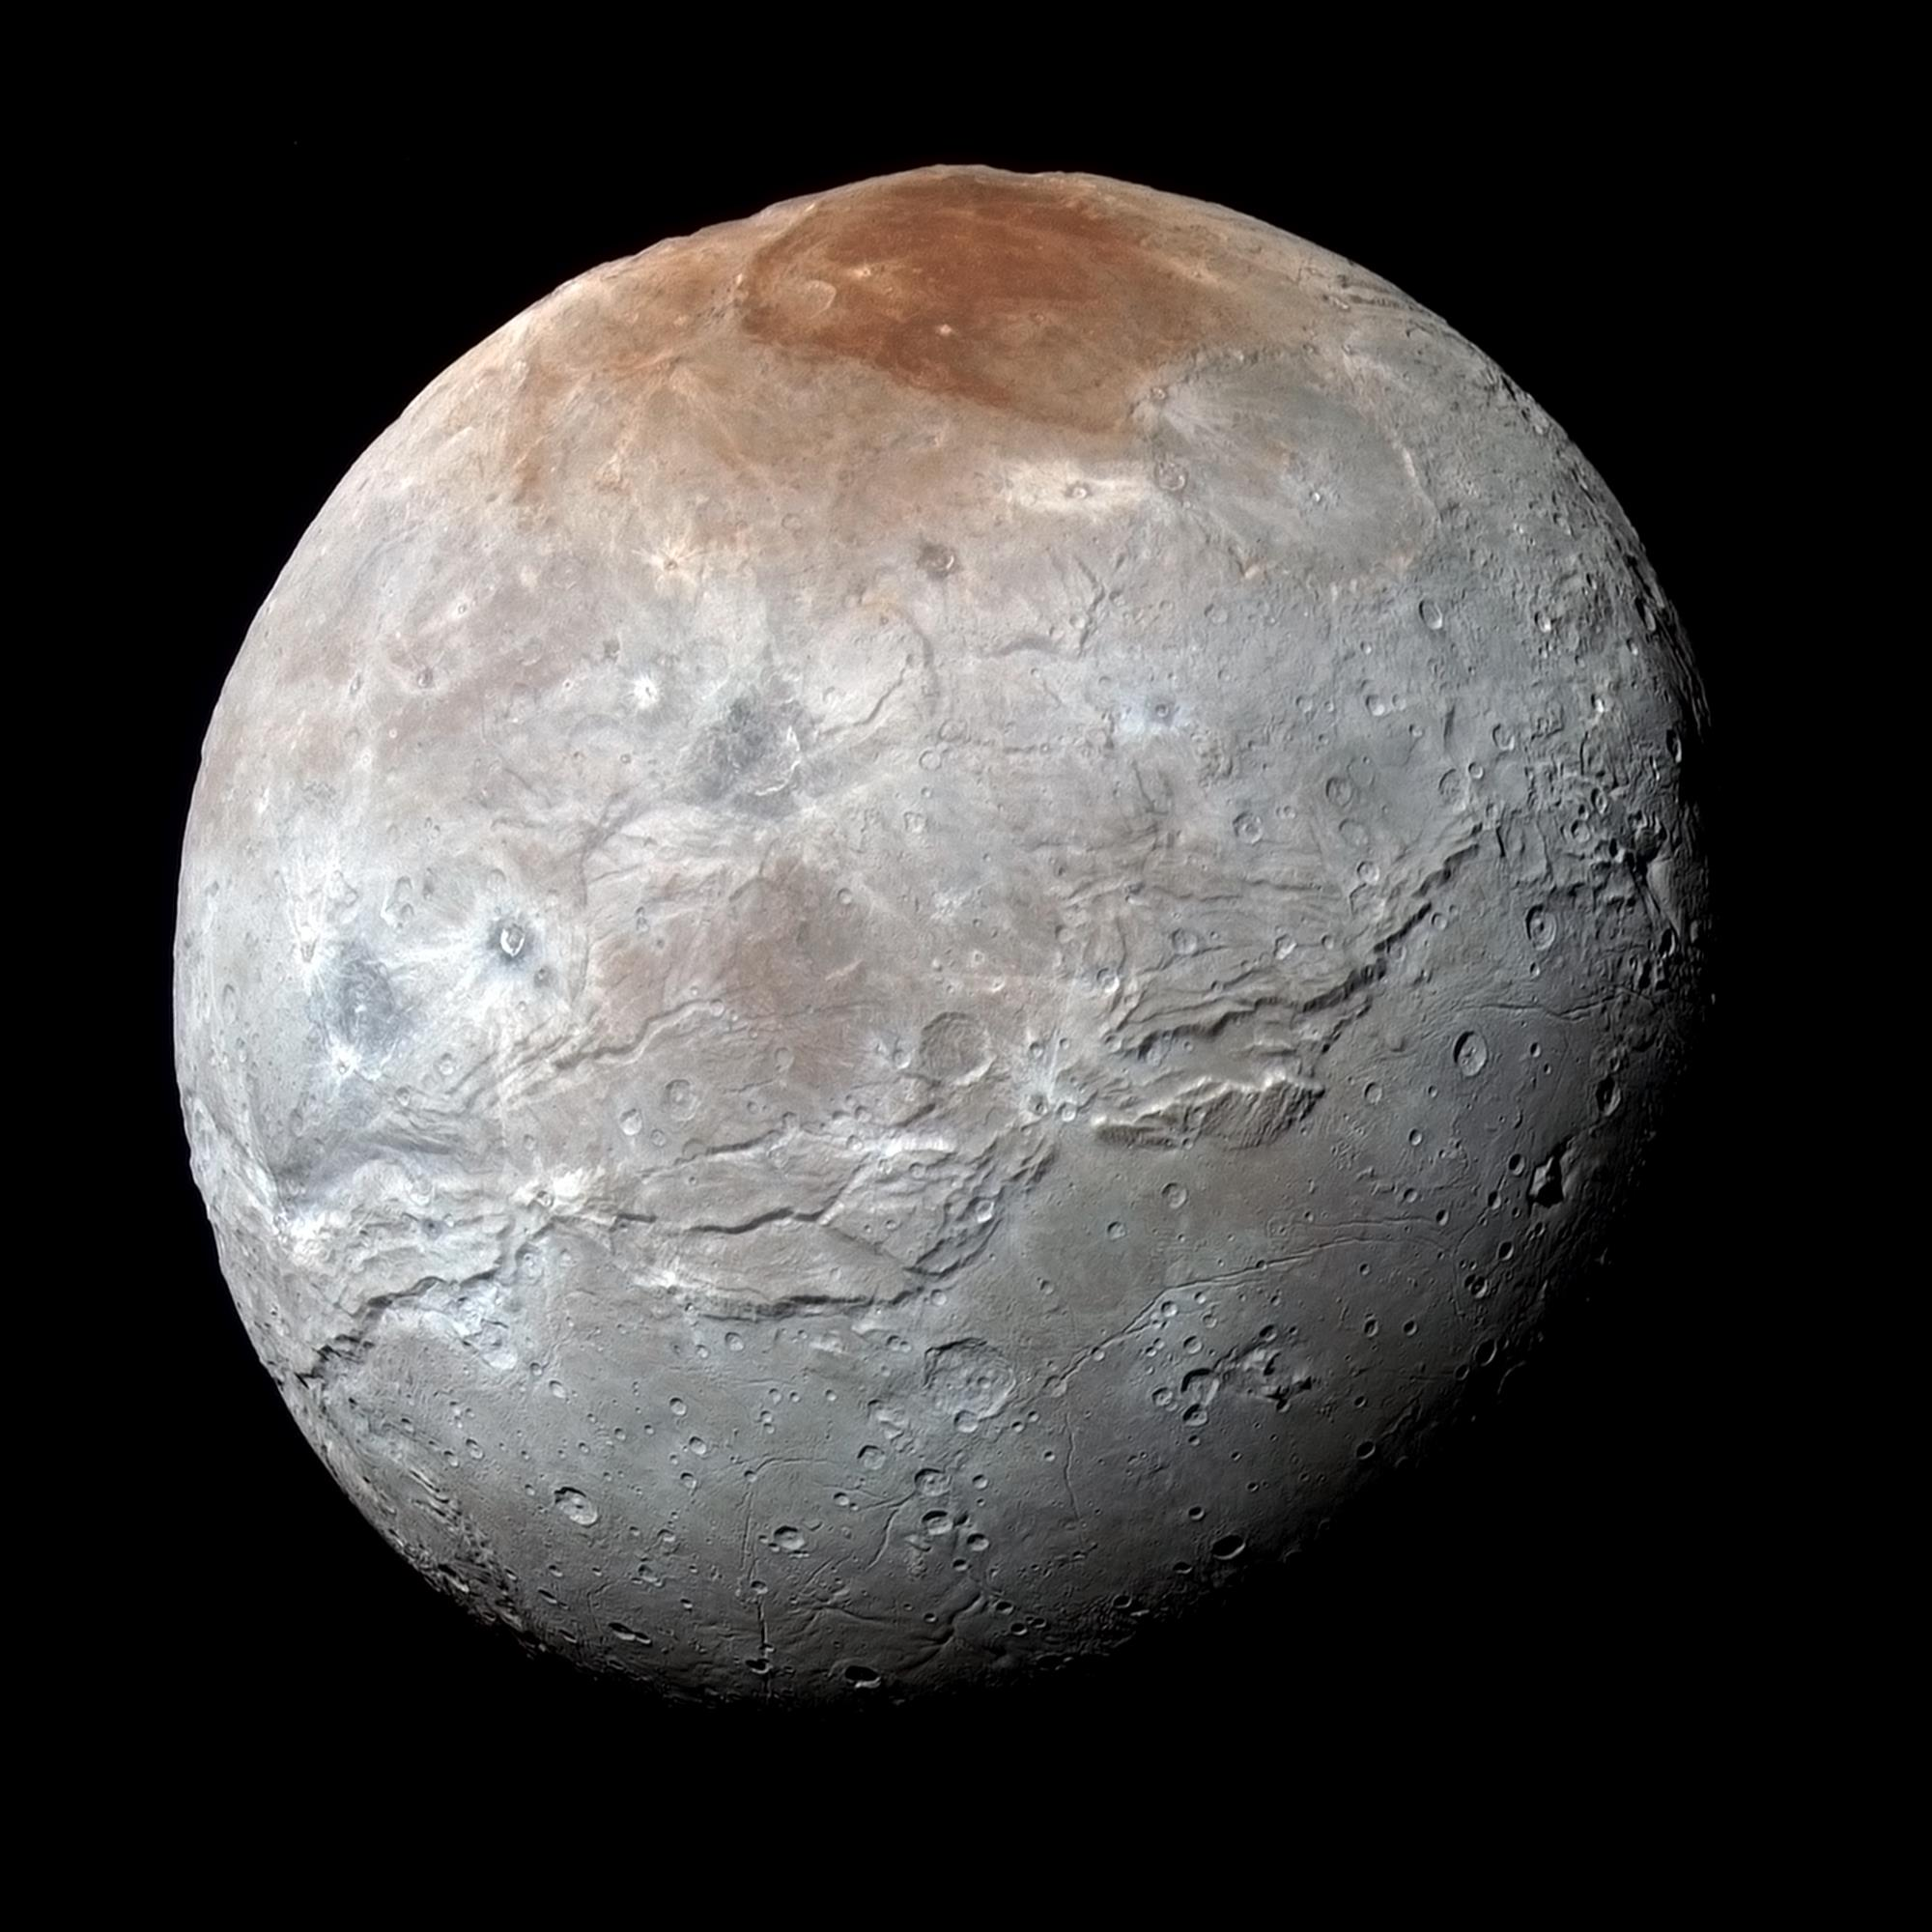 http://www.nasa.gov/sites/default/files/thumbnails/image/nh-charon-neutral-bright-release.jpg